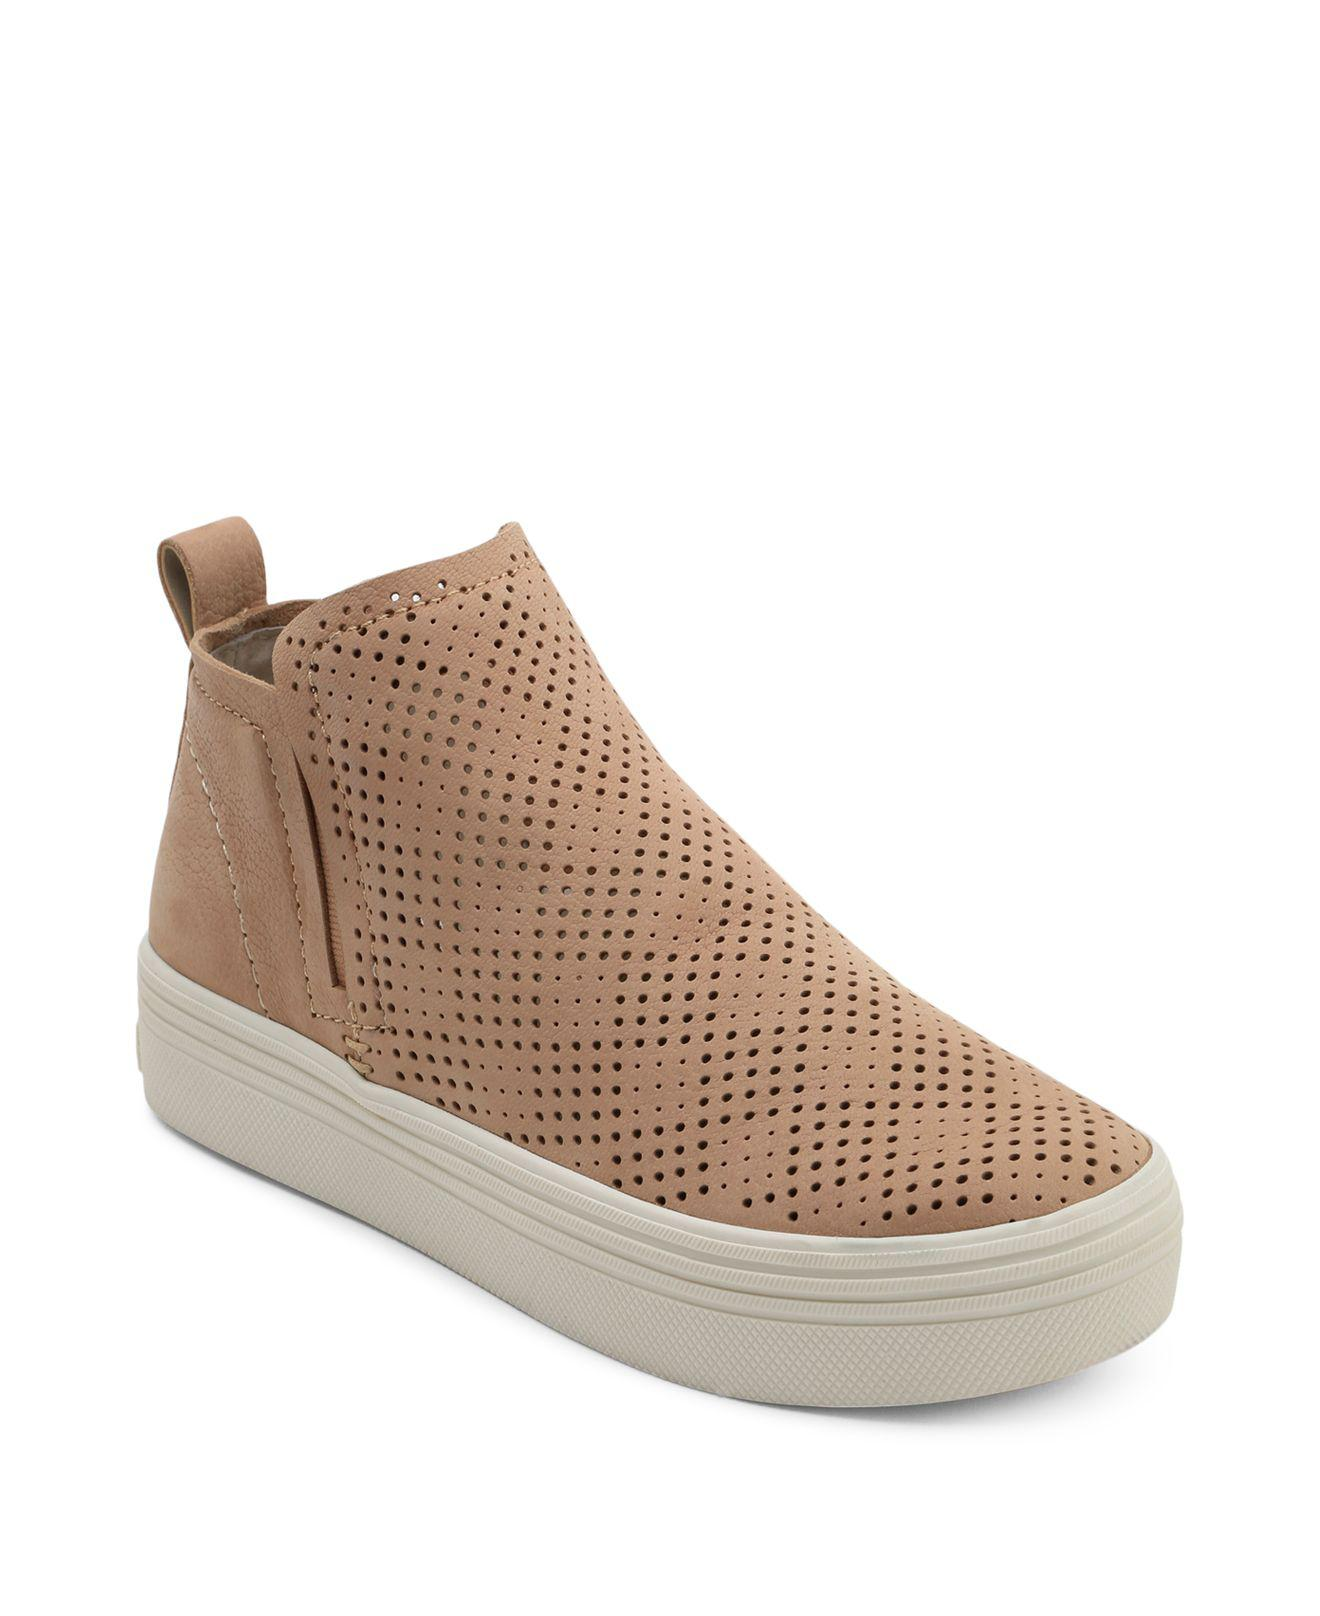 Dolce Vita Women's Tate Perforated Leather Slip-On Sneakers 9yJq0PaP